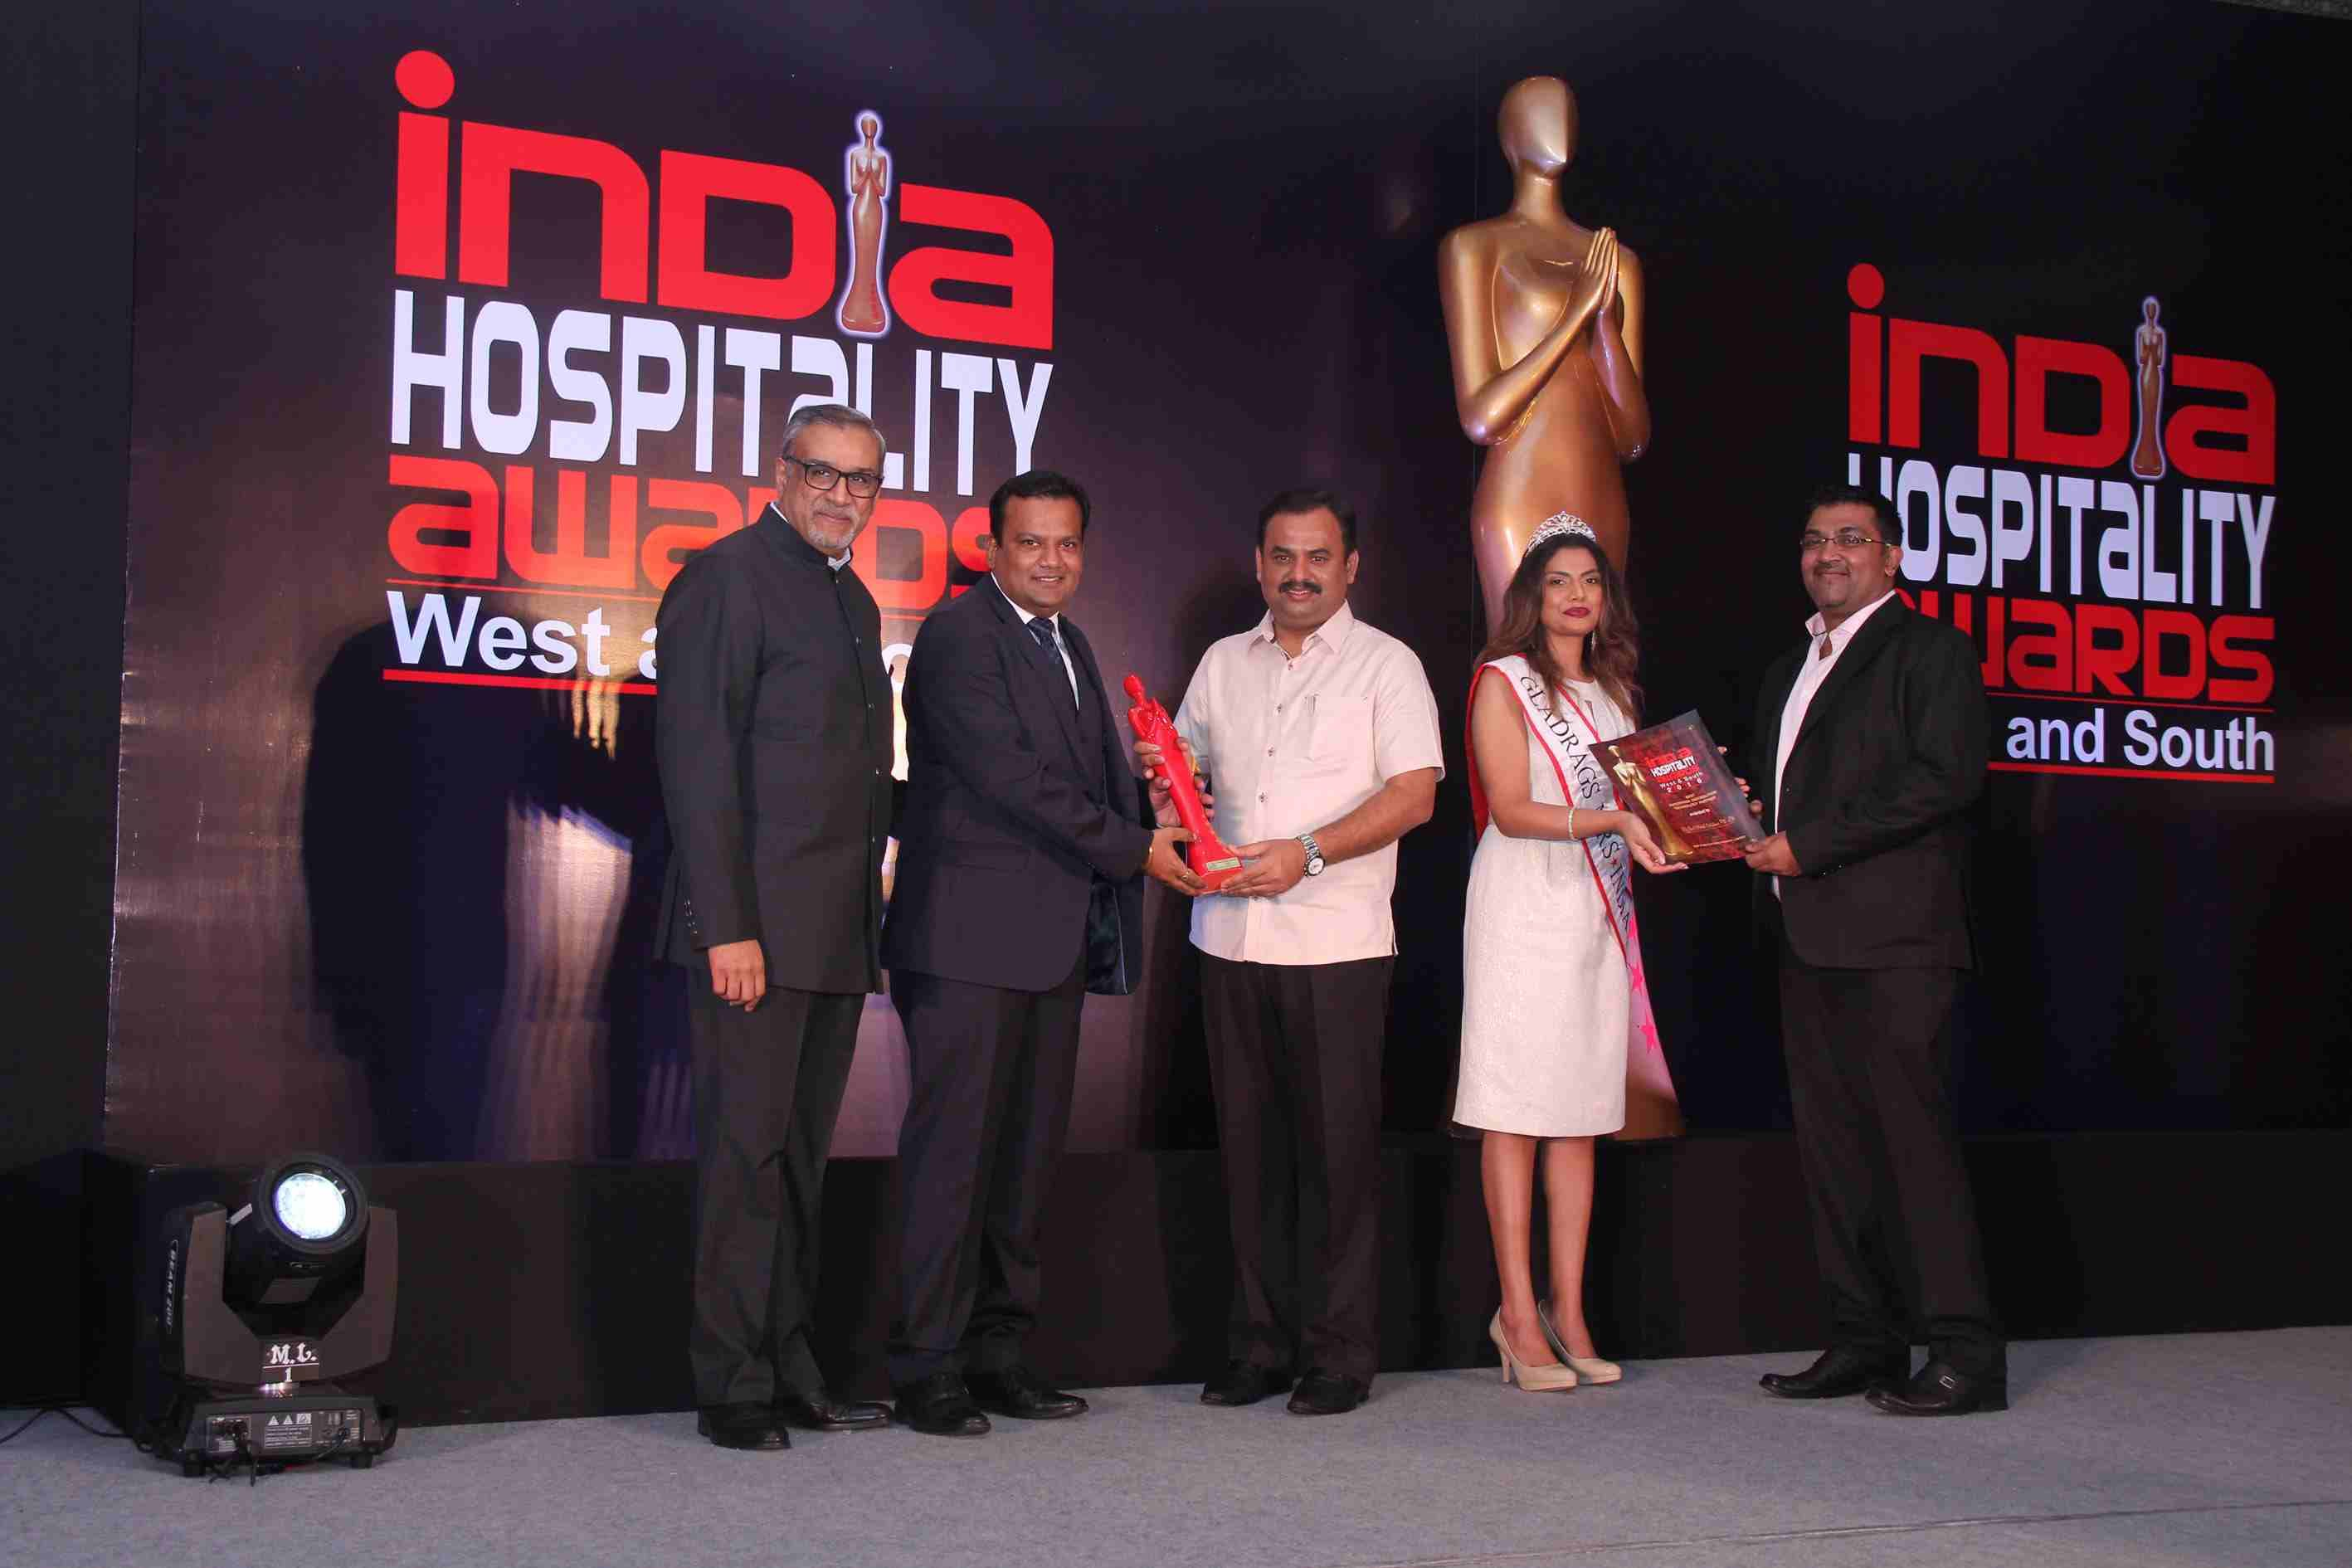 RezNext Wins the Coveted India Hospitality Award, 2016